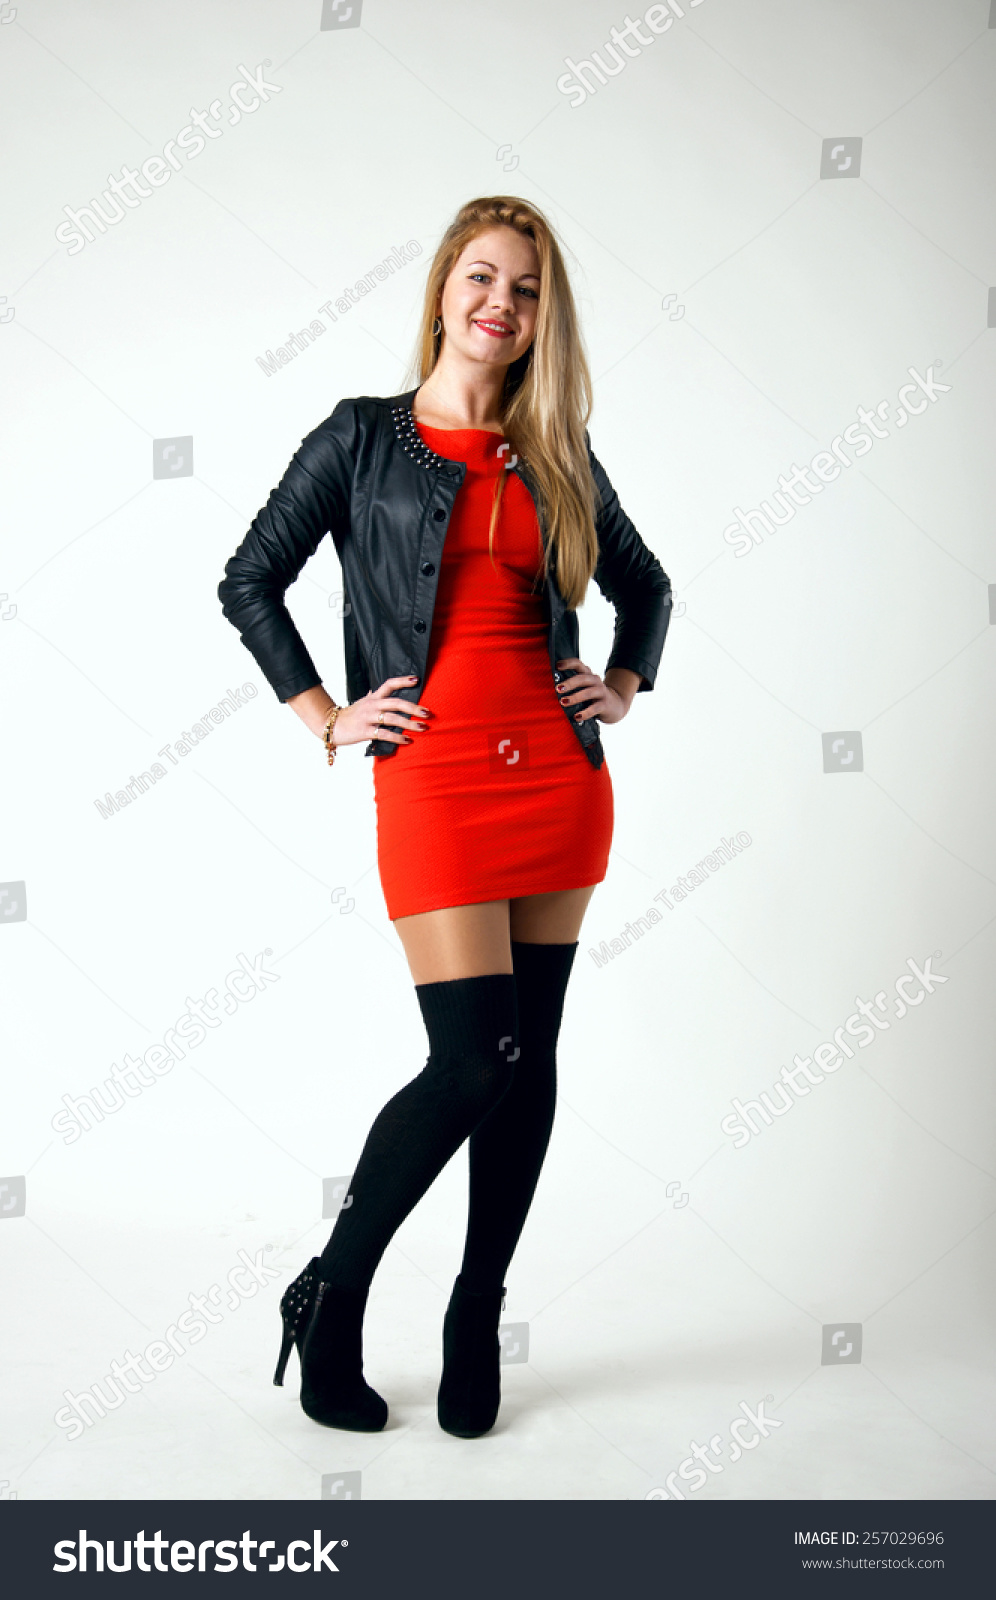 Pretty Young Blond Woman Model Wearing Stock Photo ...